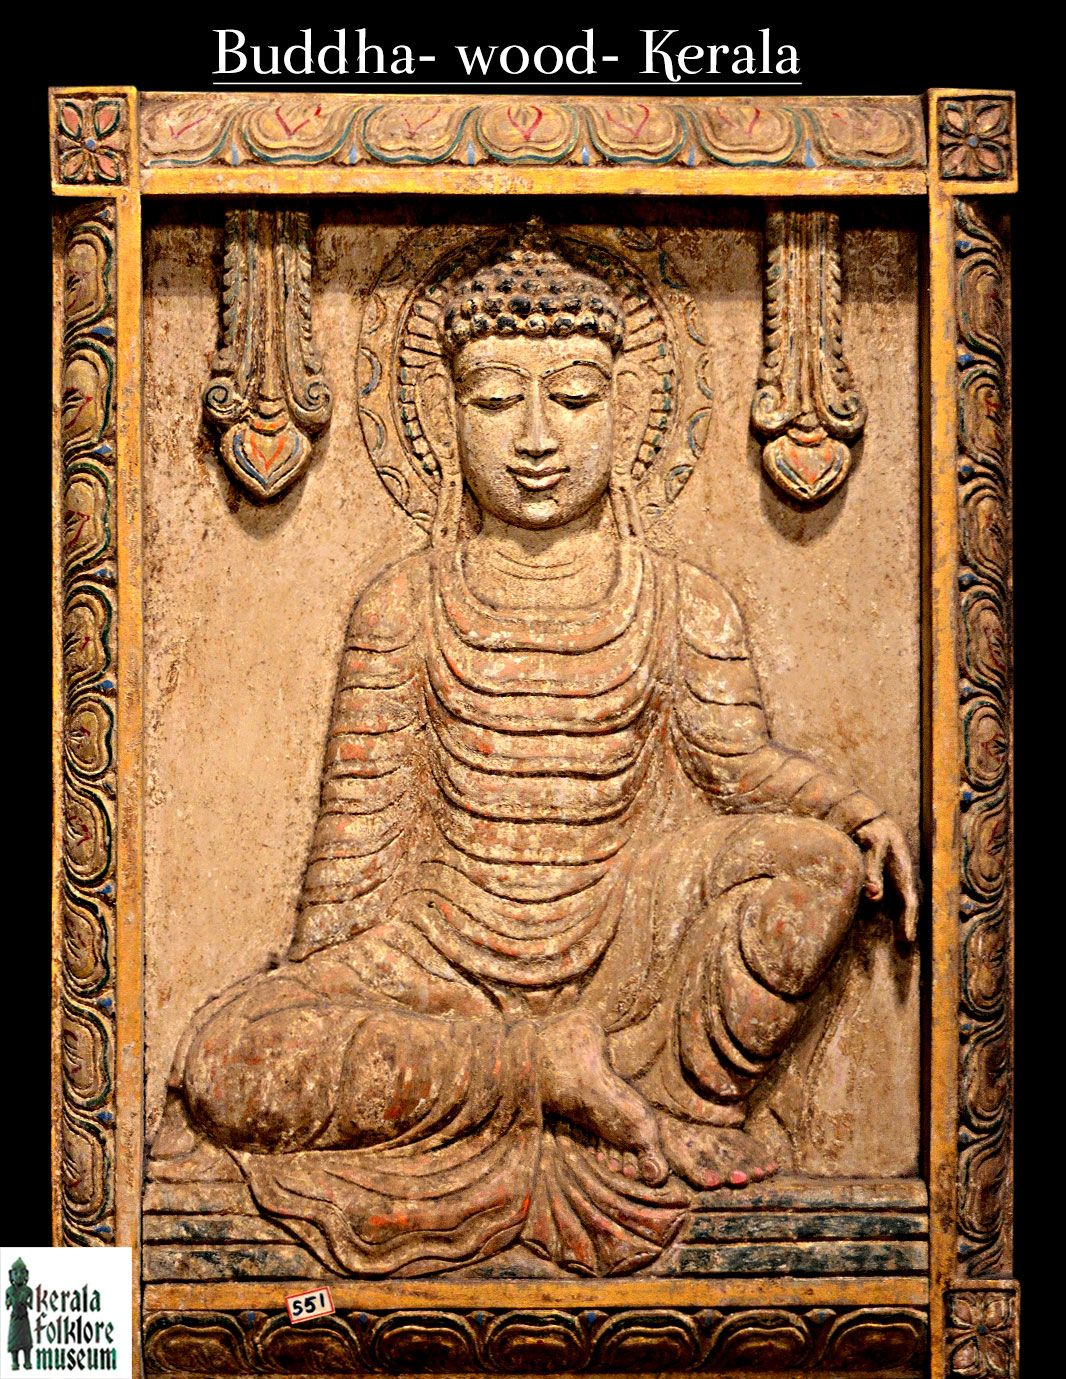 Pin By Chandru On Architecture: Buddha Statue, Buddha, Antique Collection